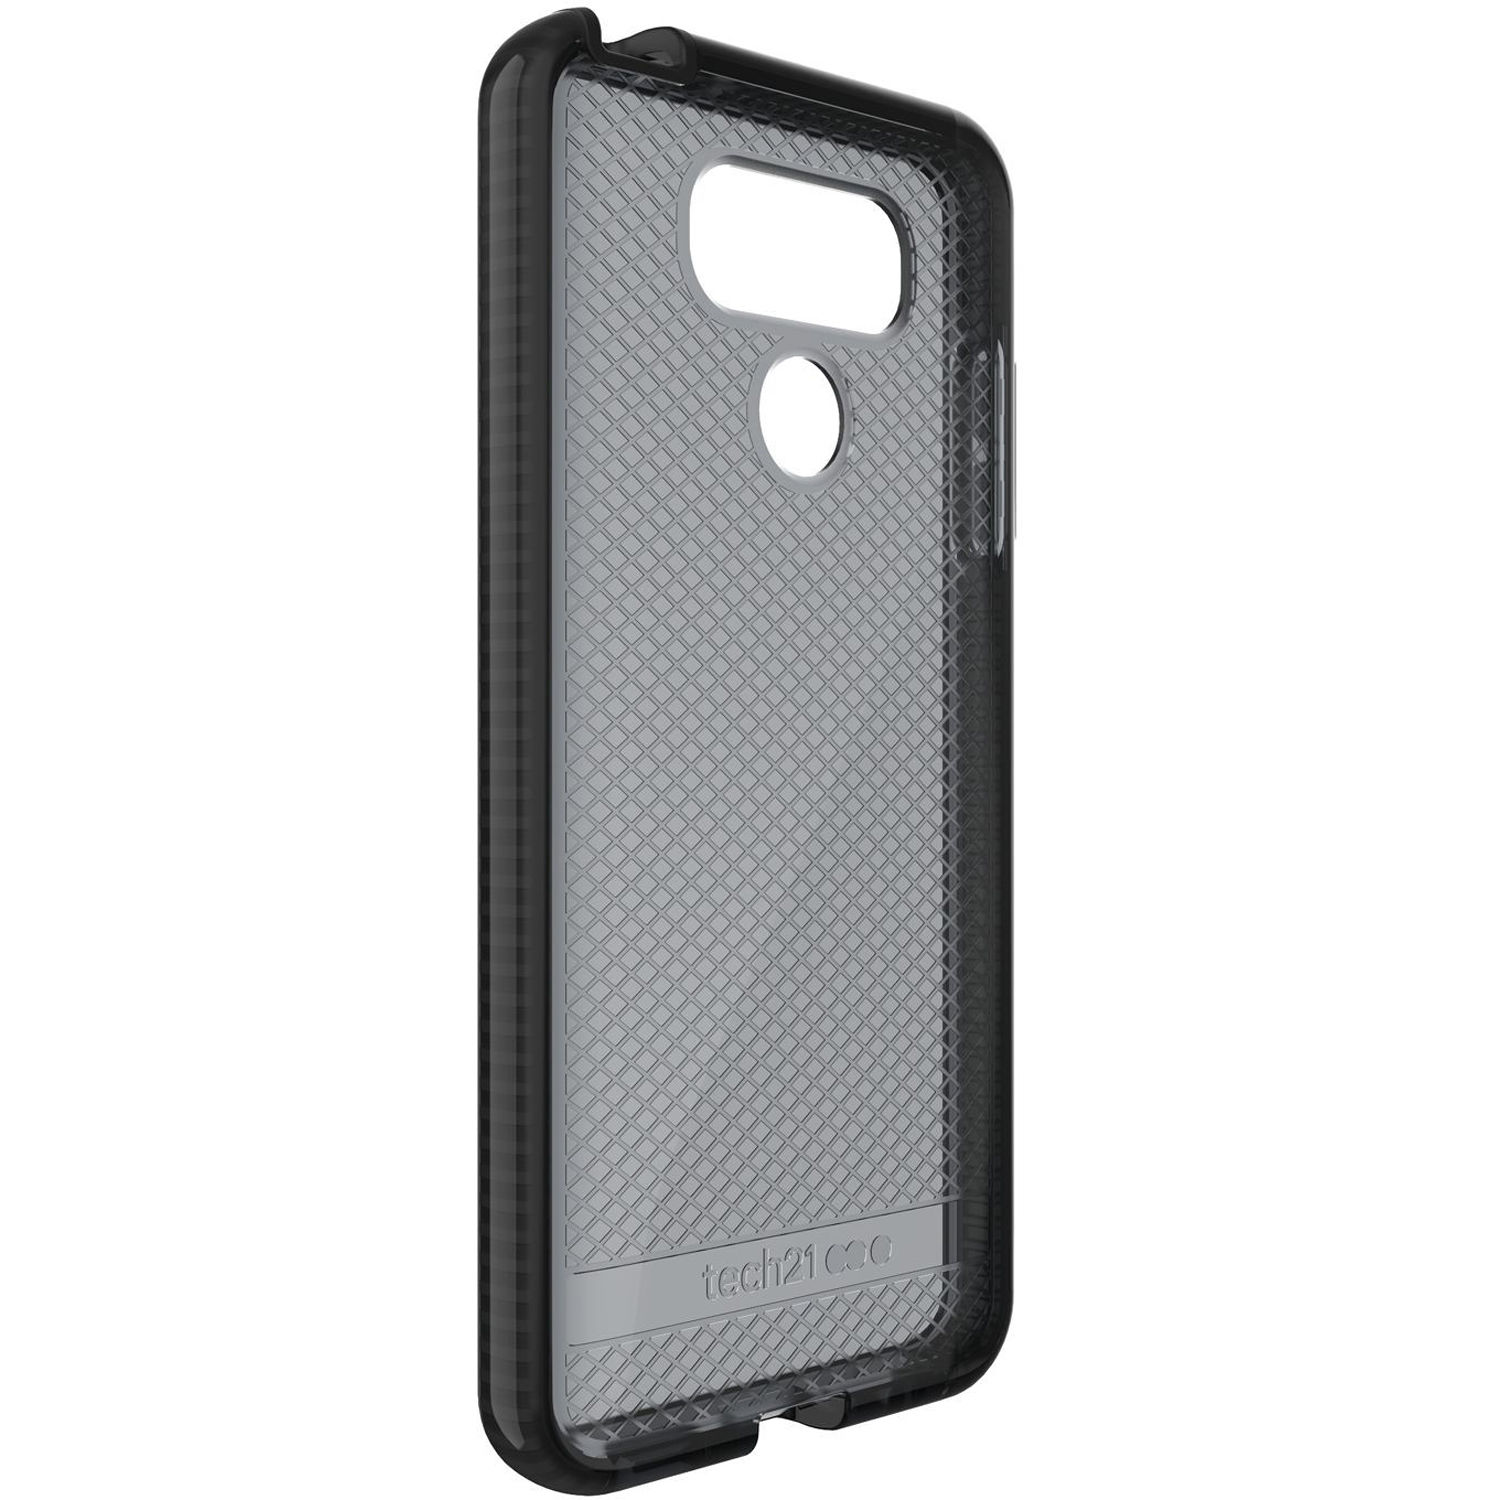 release date a6cad 8acdd Tech21 Evo Check Case for LG G6 (Smokey/Black)